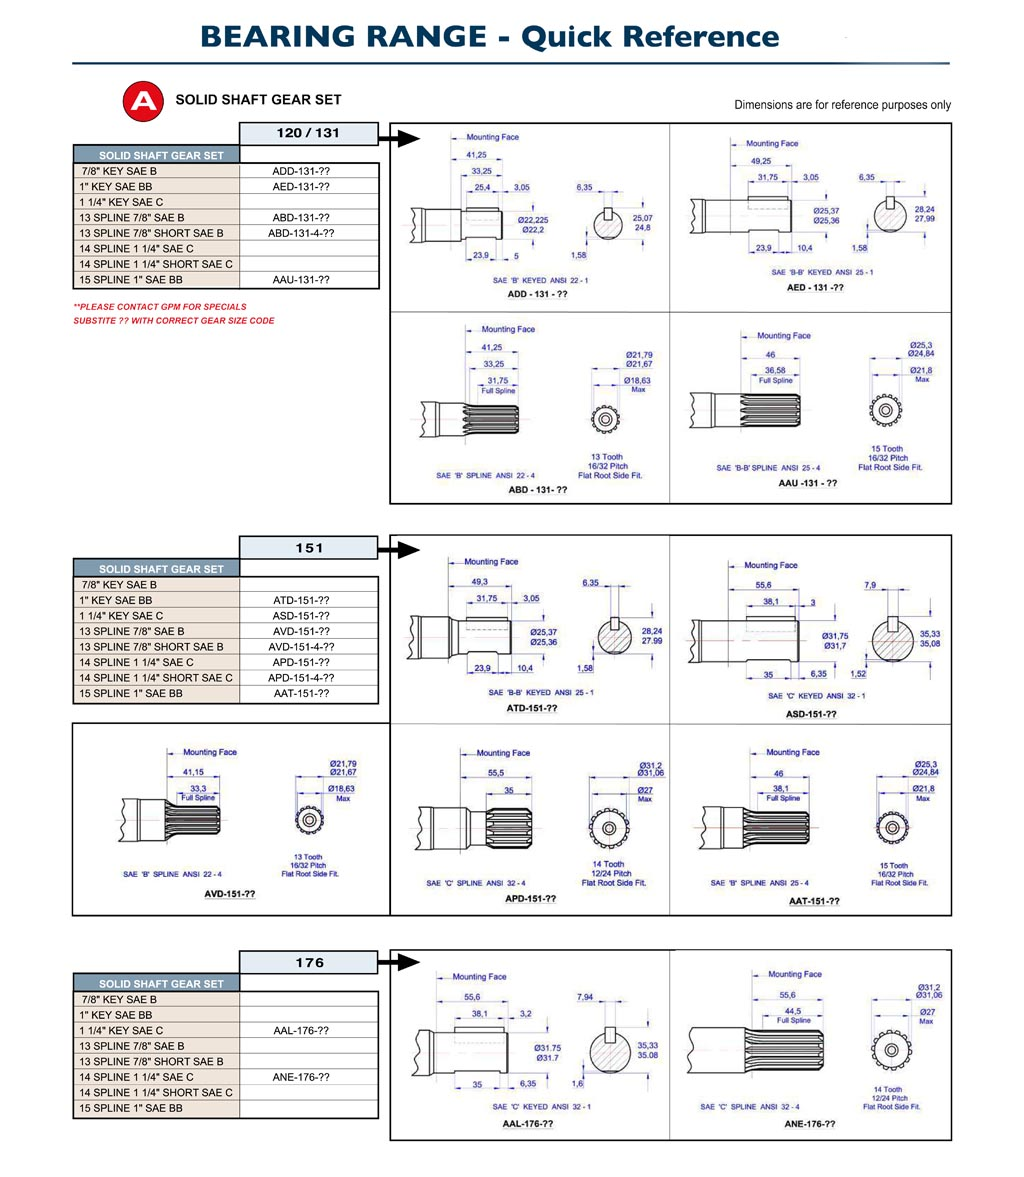 GPM Bearing Pumps Quick Reference A